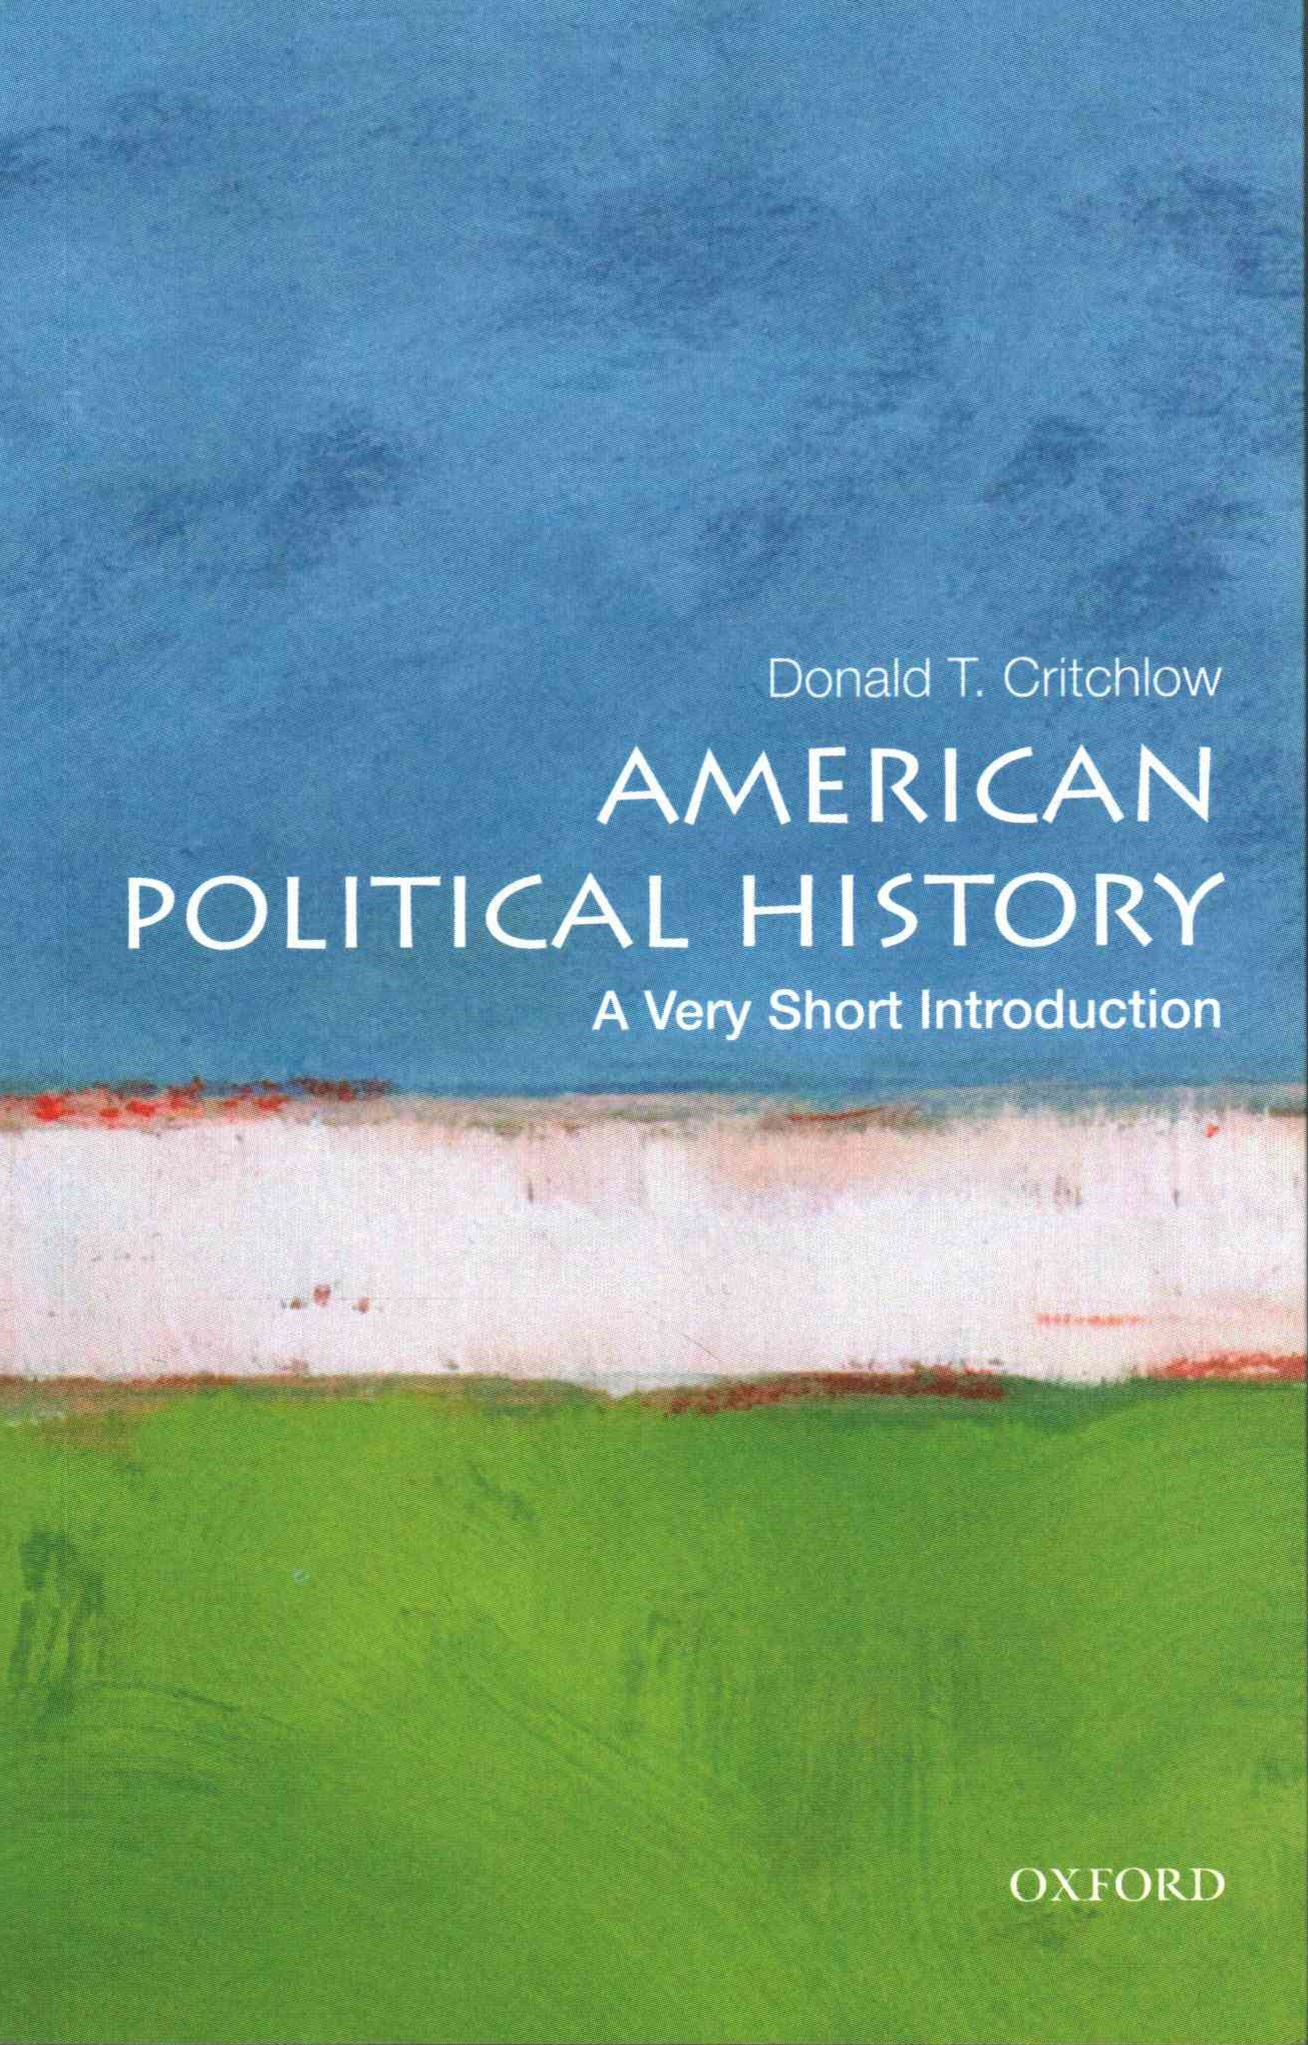 American Political History: A Very Short Introduction